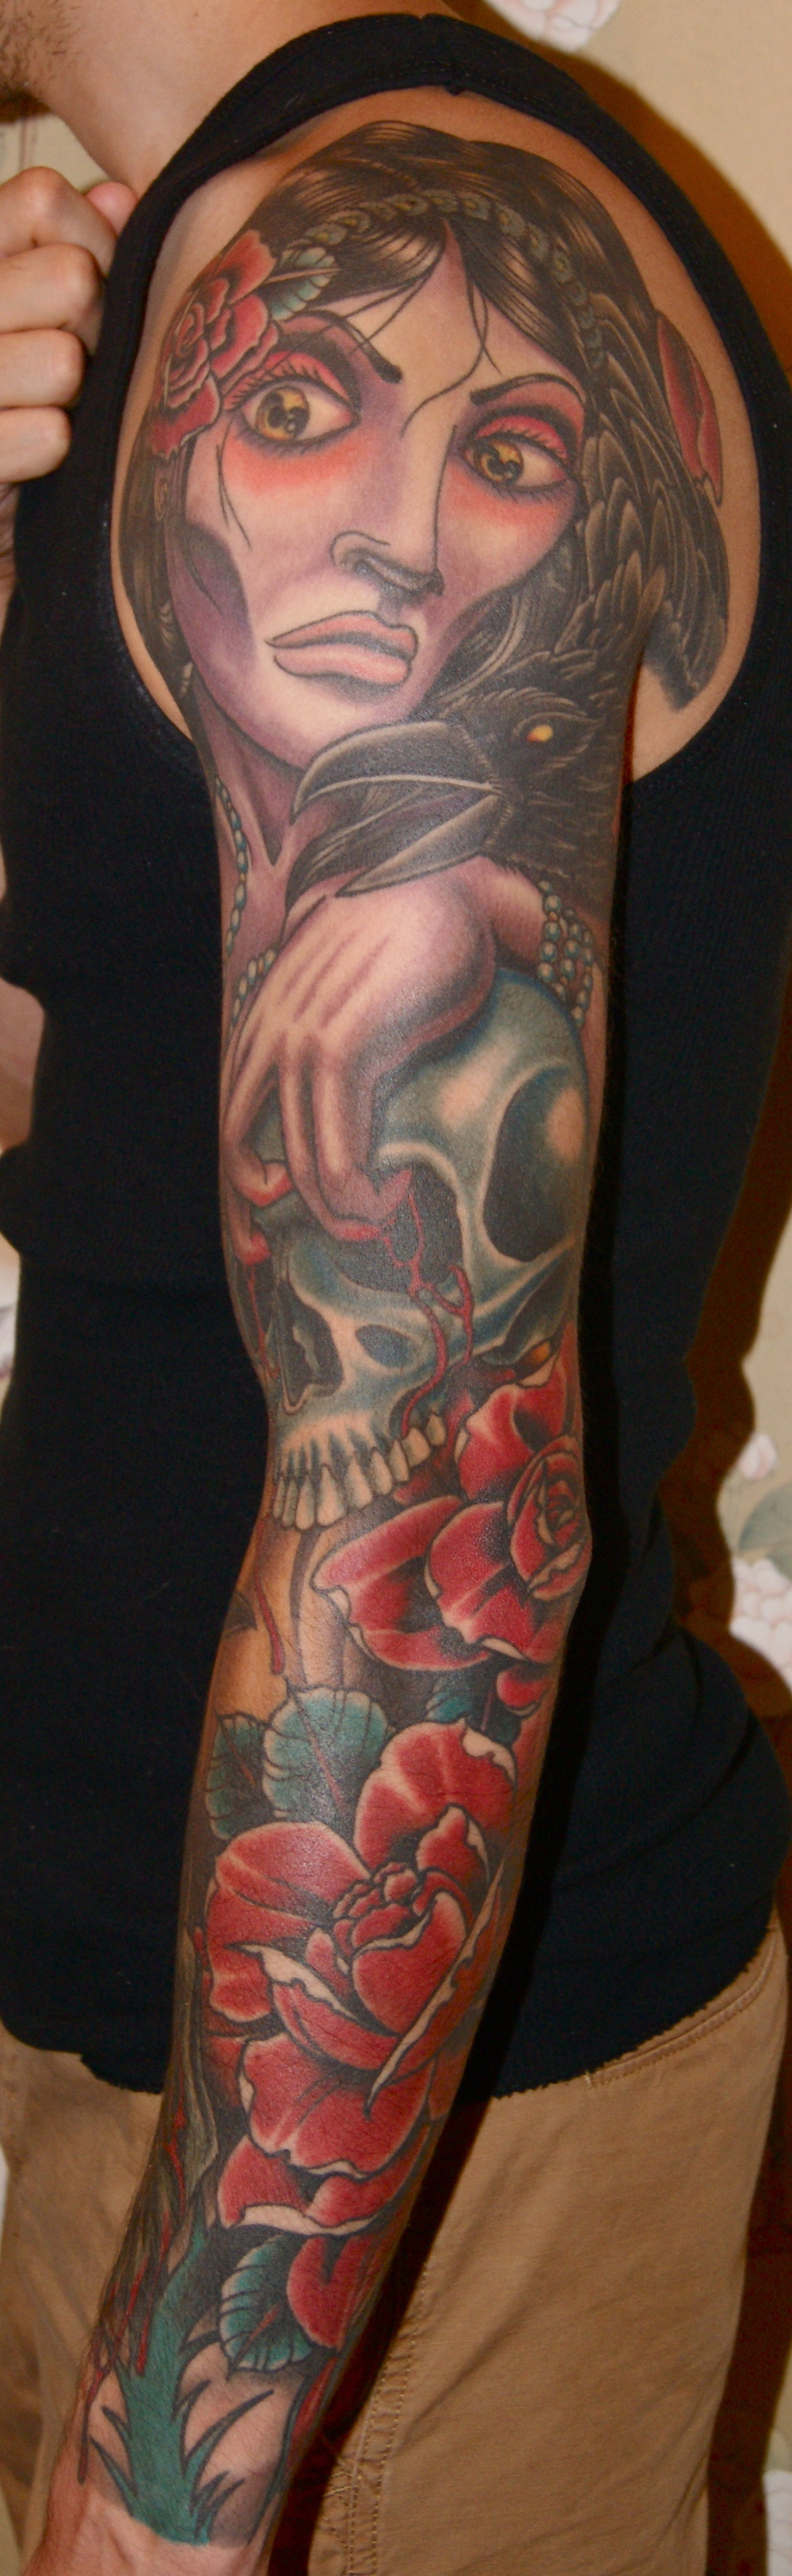 Dead Girl Skull Roses sleeve tattoo